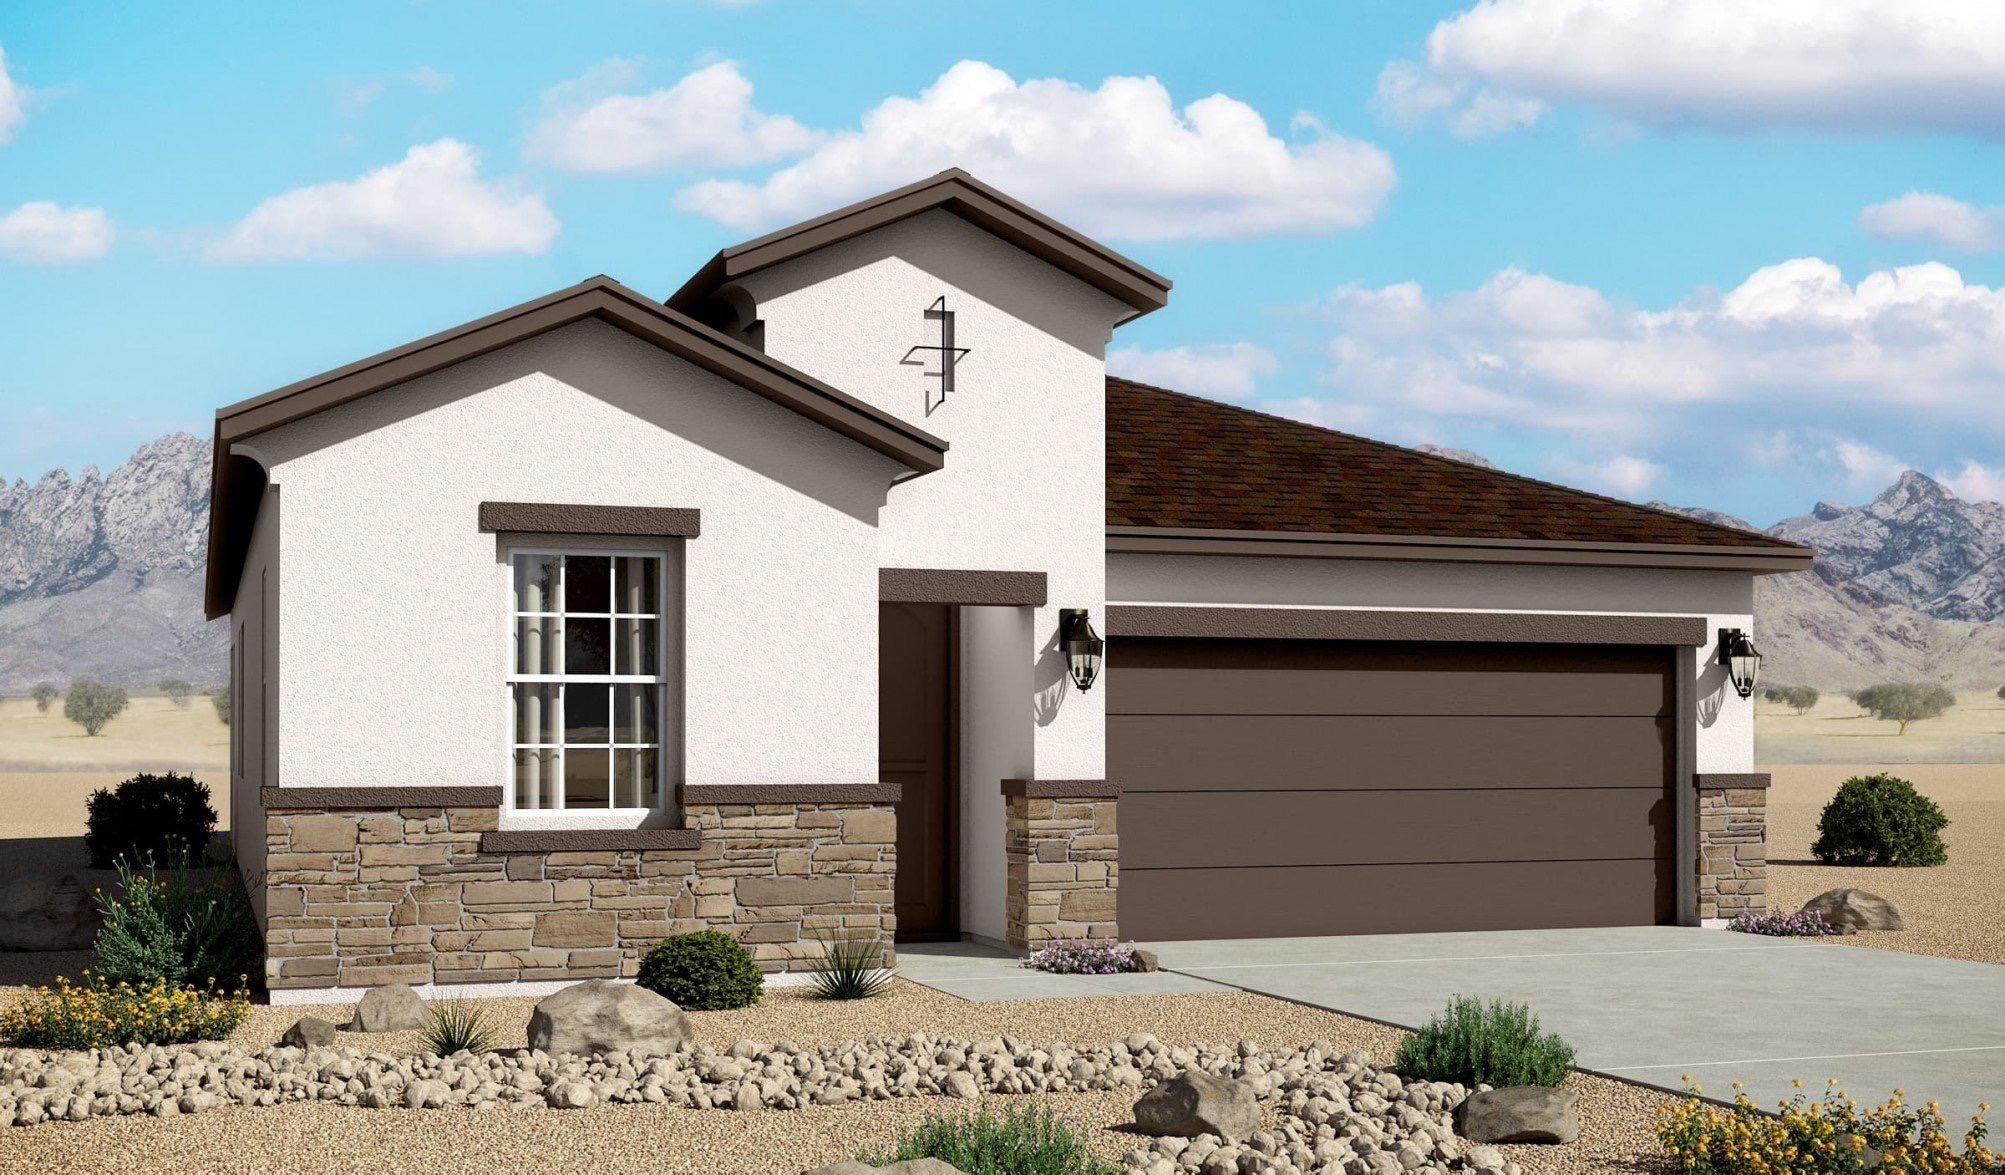 1752 Plan Estimated completion is March.   Features include: Extra wide Lot, Stacked Stone exterior accents.  Gourment Kitchen with granite countertops, espresso cabinets, ivory colored subway backsplash, Pendant lights,  Wood look floor tile , Covered Patio